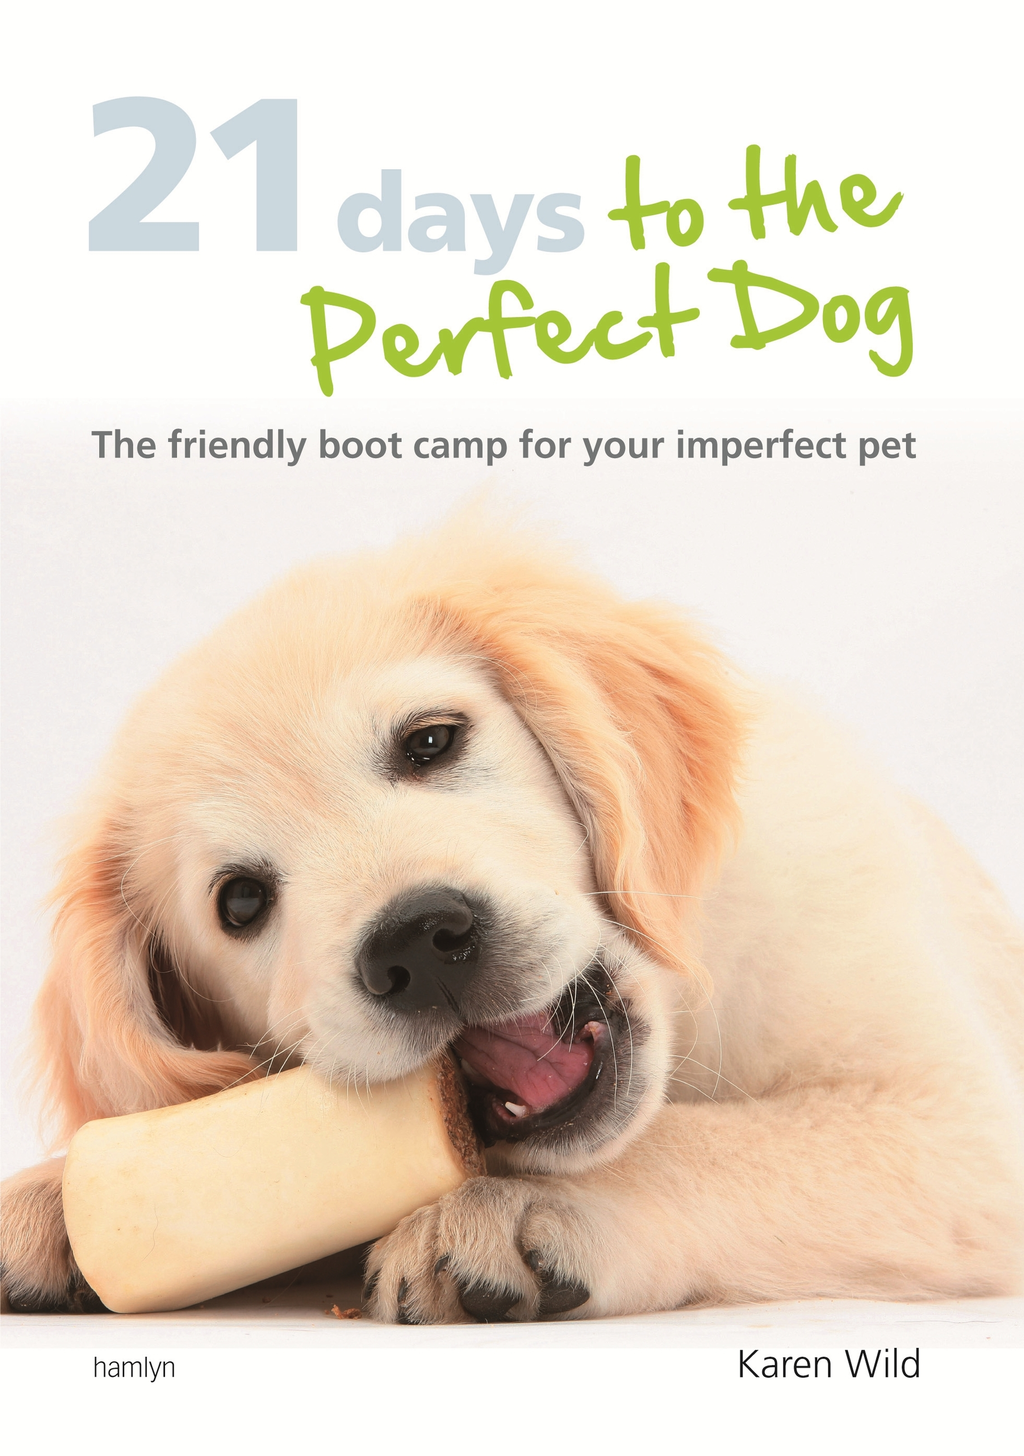 21 Days To The Perfect Dog The friendly boot camp for your imperfect pet